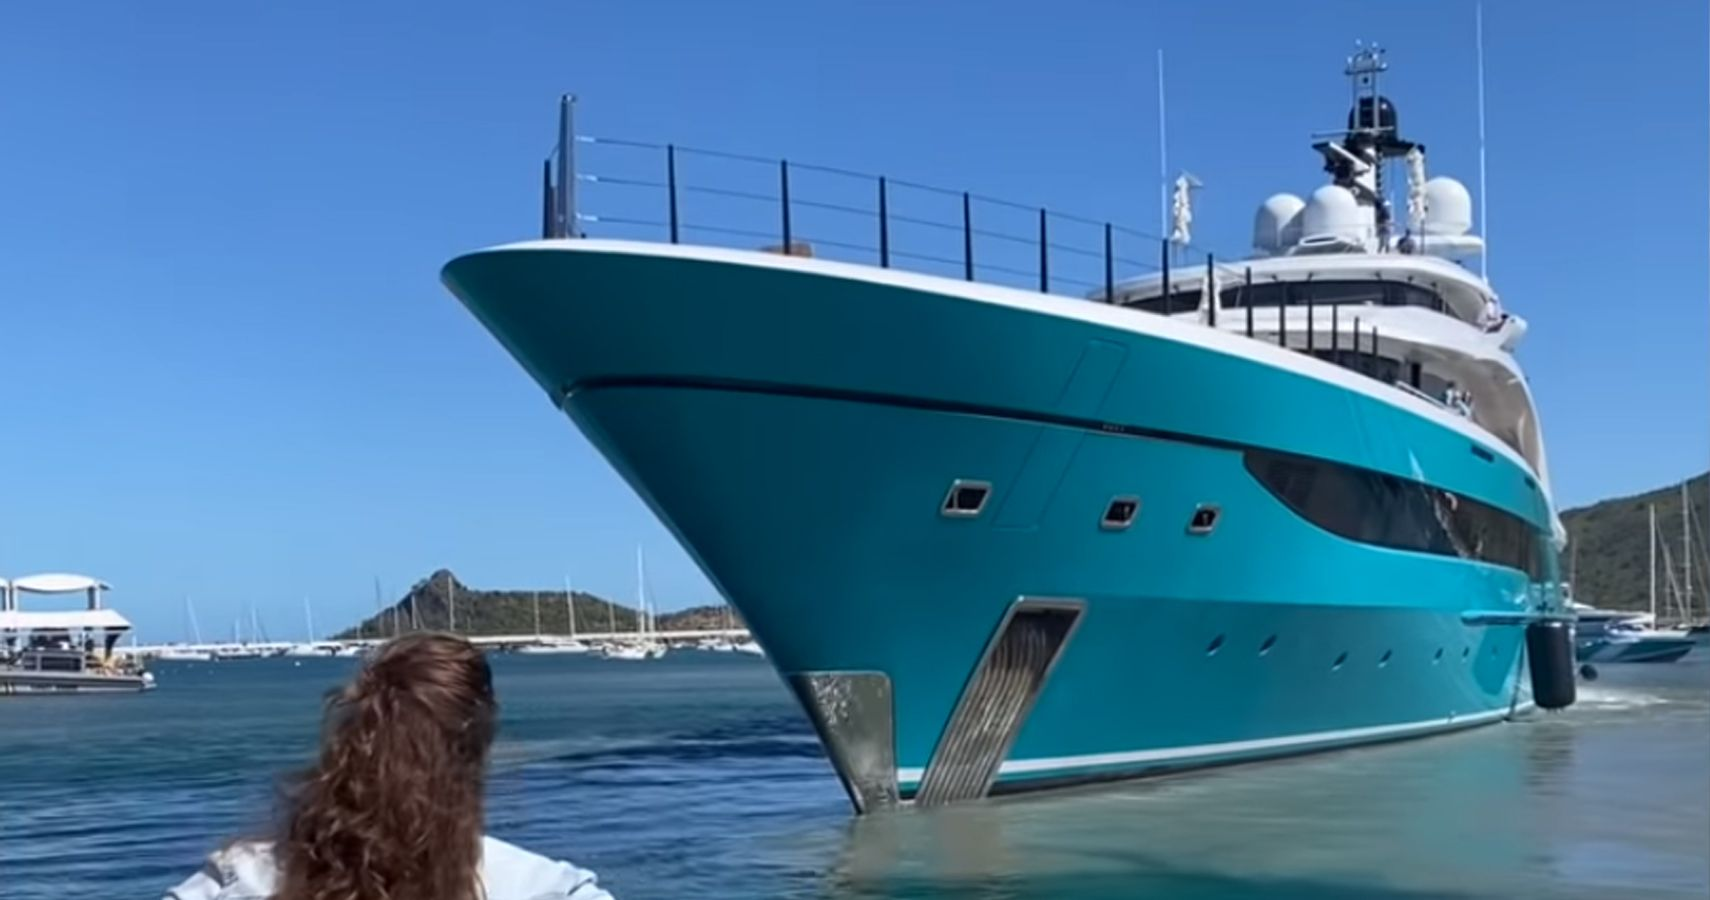 Watch This Uncontrollable Superyacht Repeatedly Crash Into A Dock